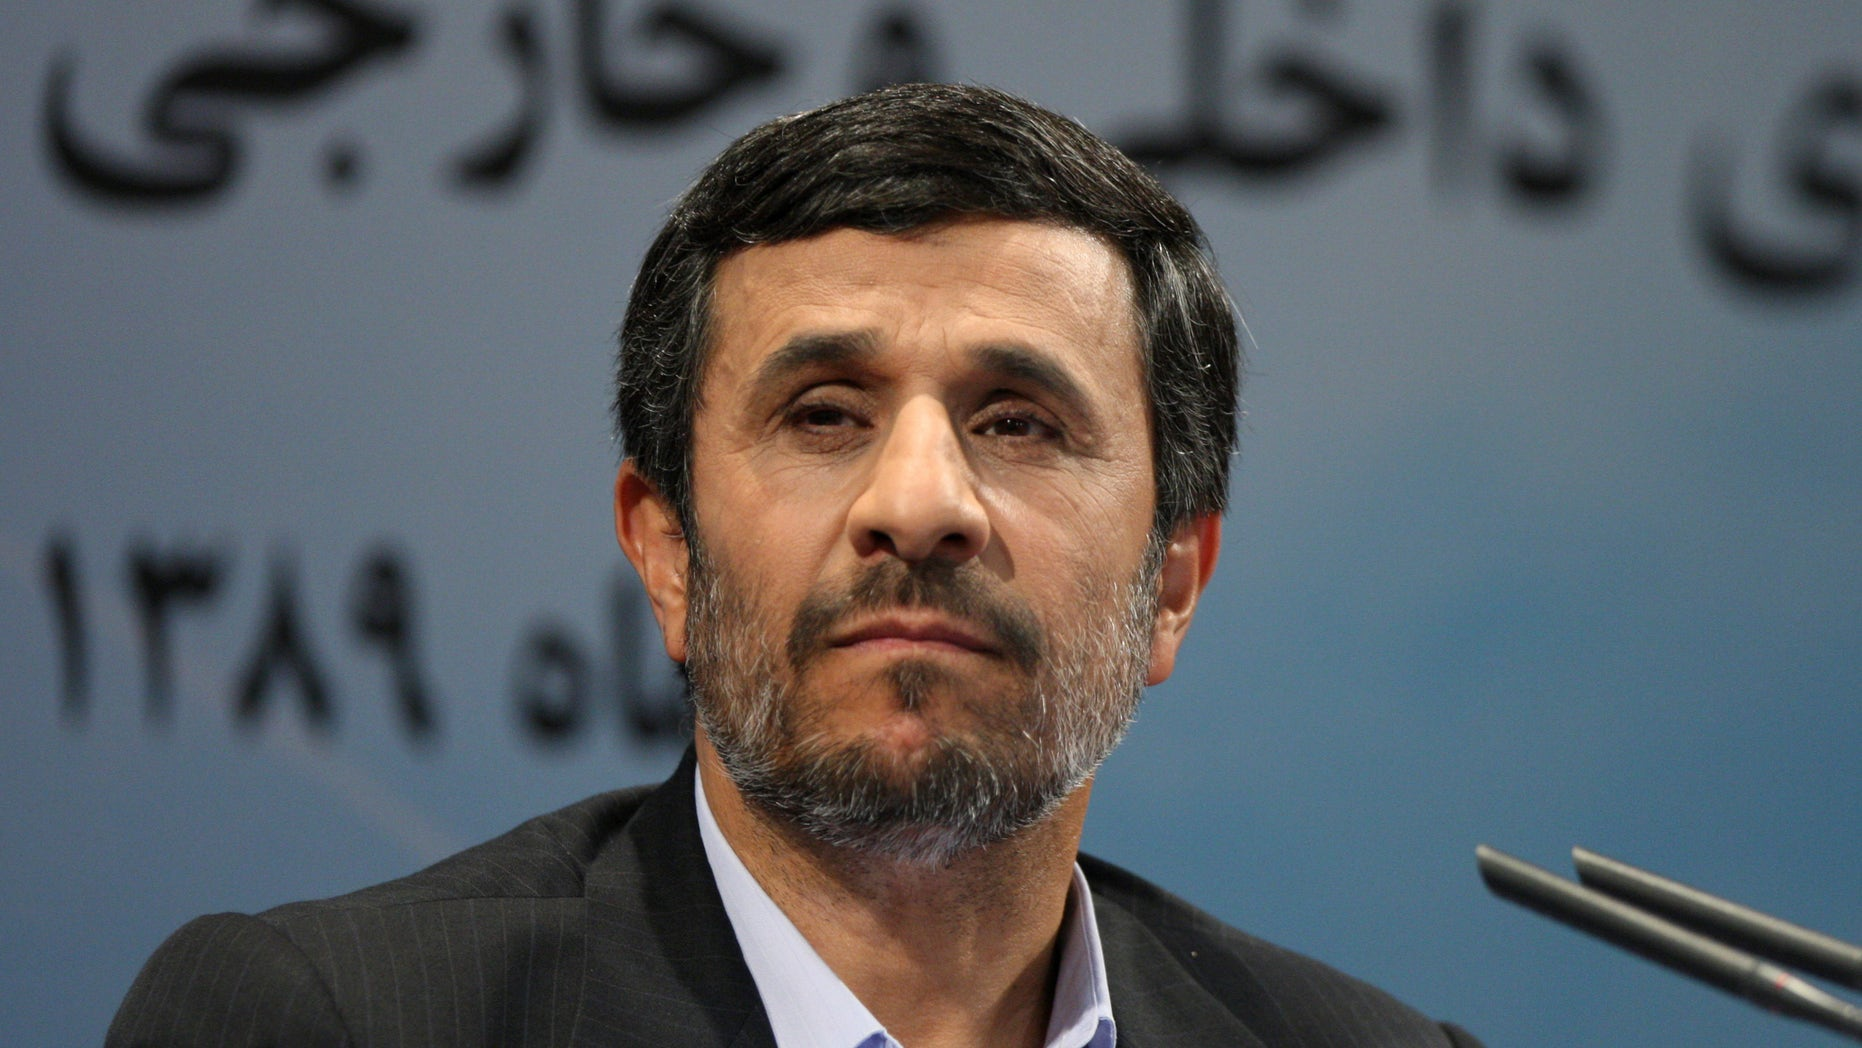 Iranian president Mahmoud Ahmadinejad shown here Nov. 29, listens to a question during his press conference in Tehran, Iran. Ahmadinejad was jeered when he said in a speech at Colombia University that homosexuality did not exist in Iran.